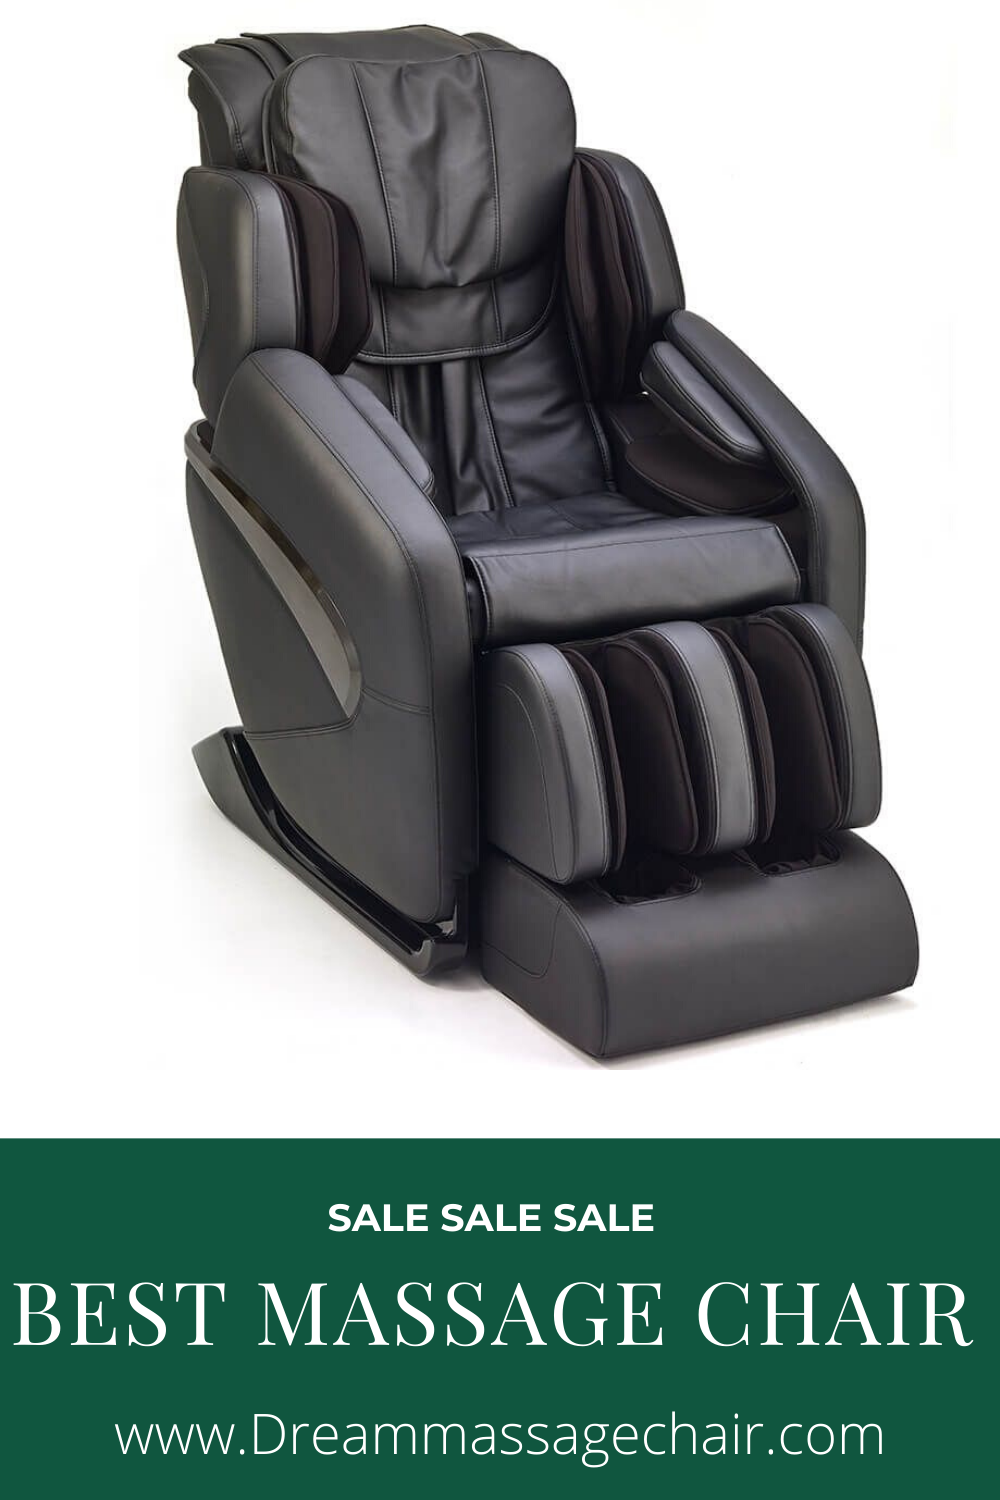 Best Massage Chair Reviews and Buyer's Guide 2020 Top 8